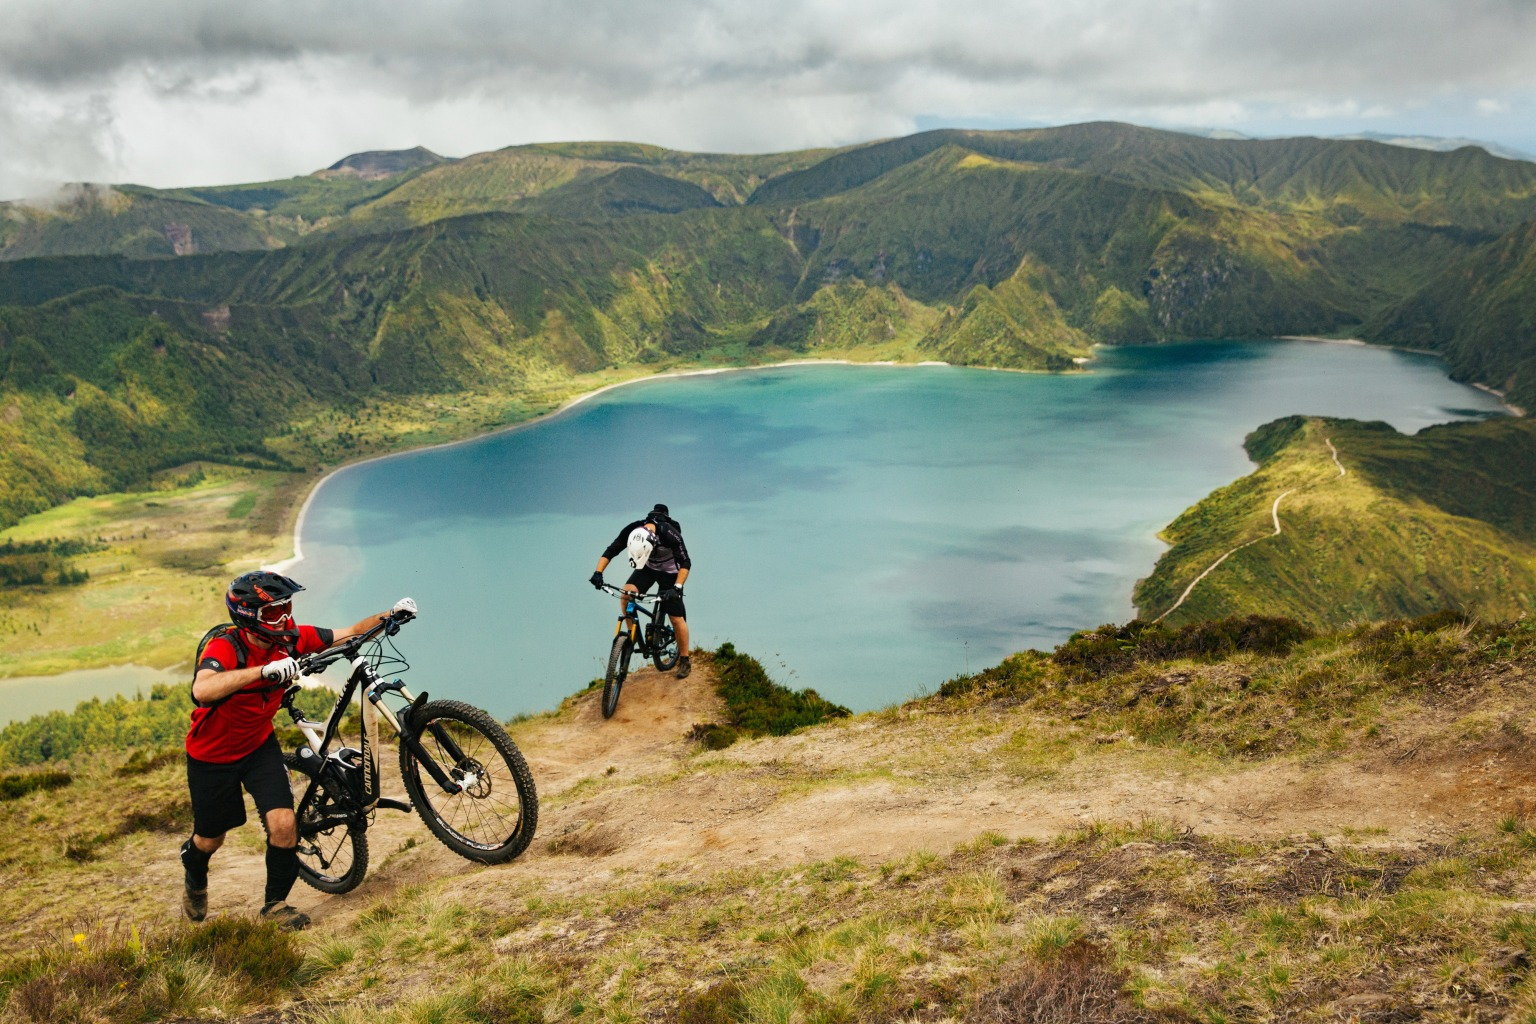 AirBnB: The Azores Islands